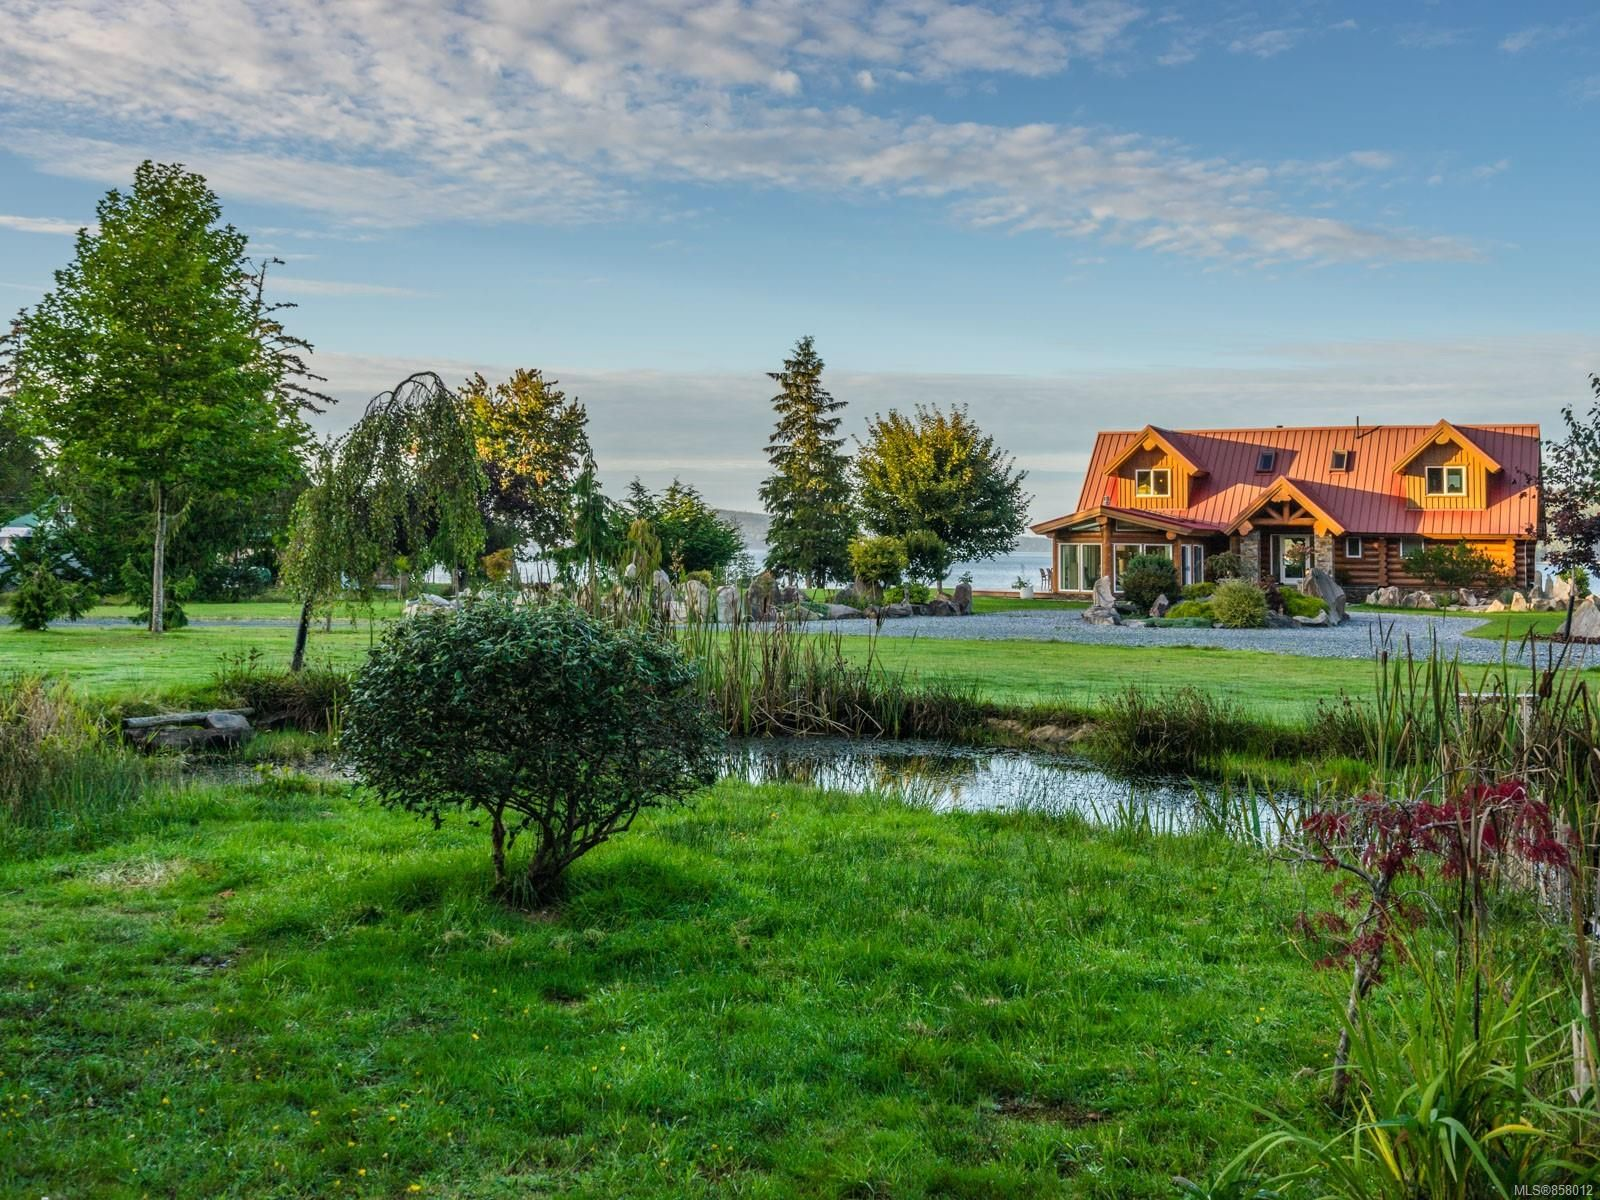 Photo 45: Photos: 6030 MINE Rd in : NI Port McNeill House for sale (North Island)  : MLS®# 858012